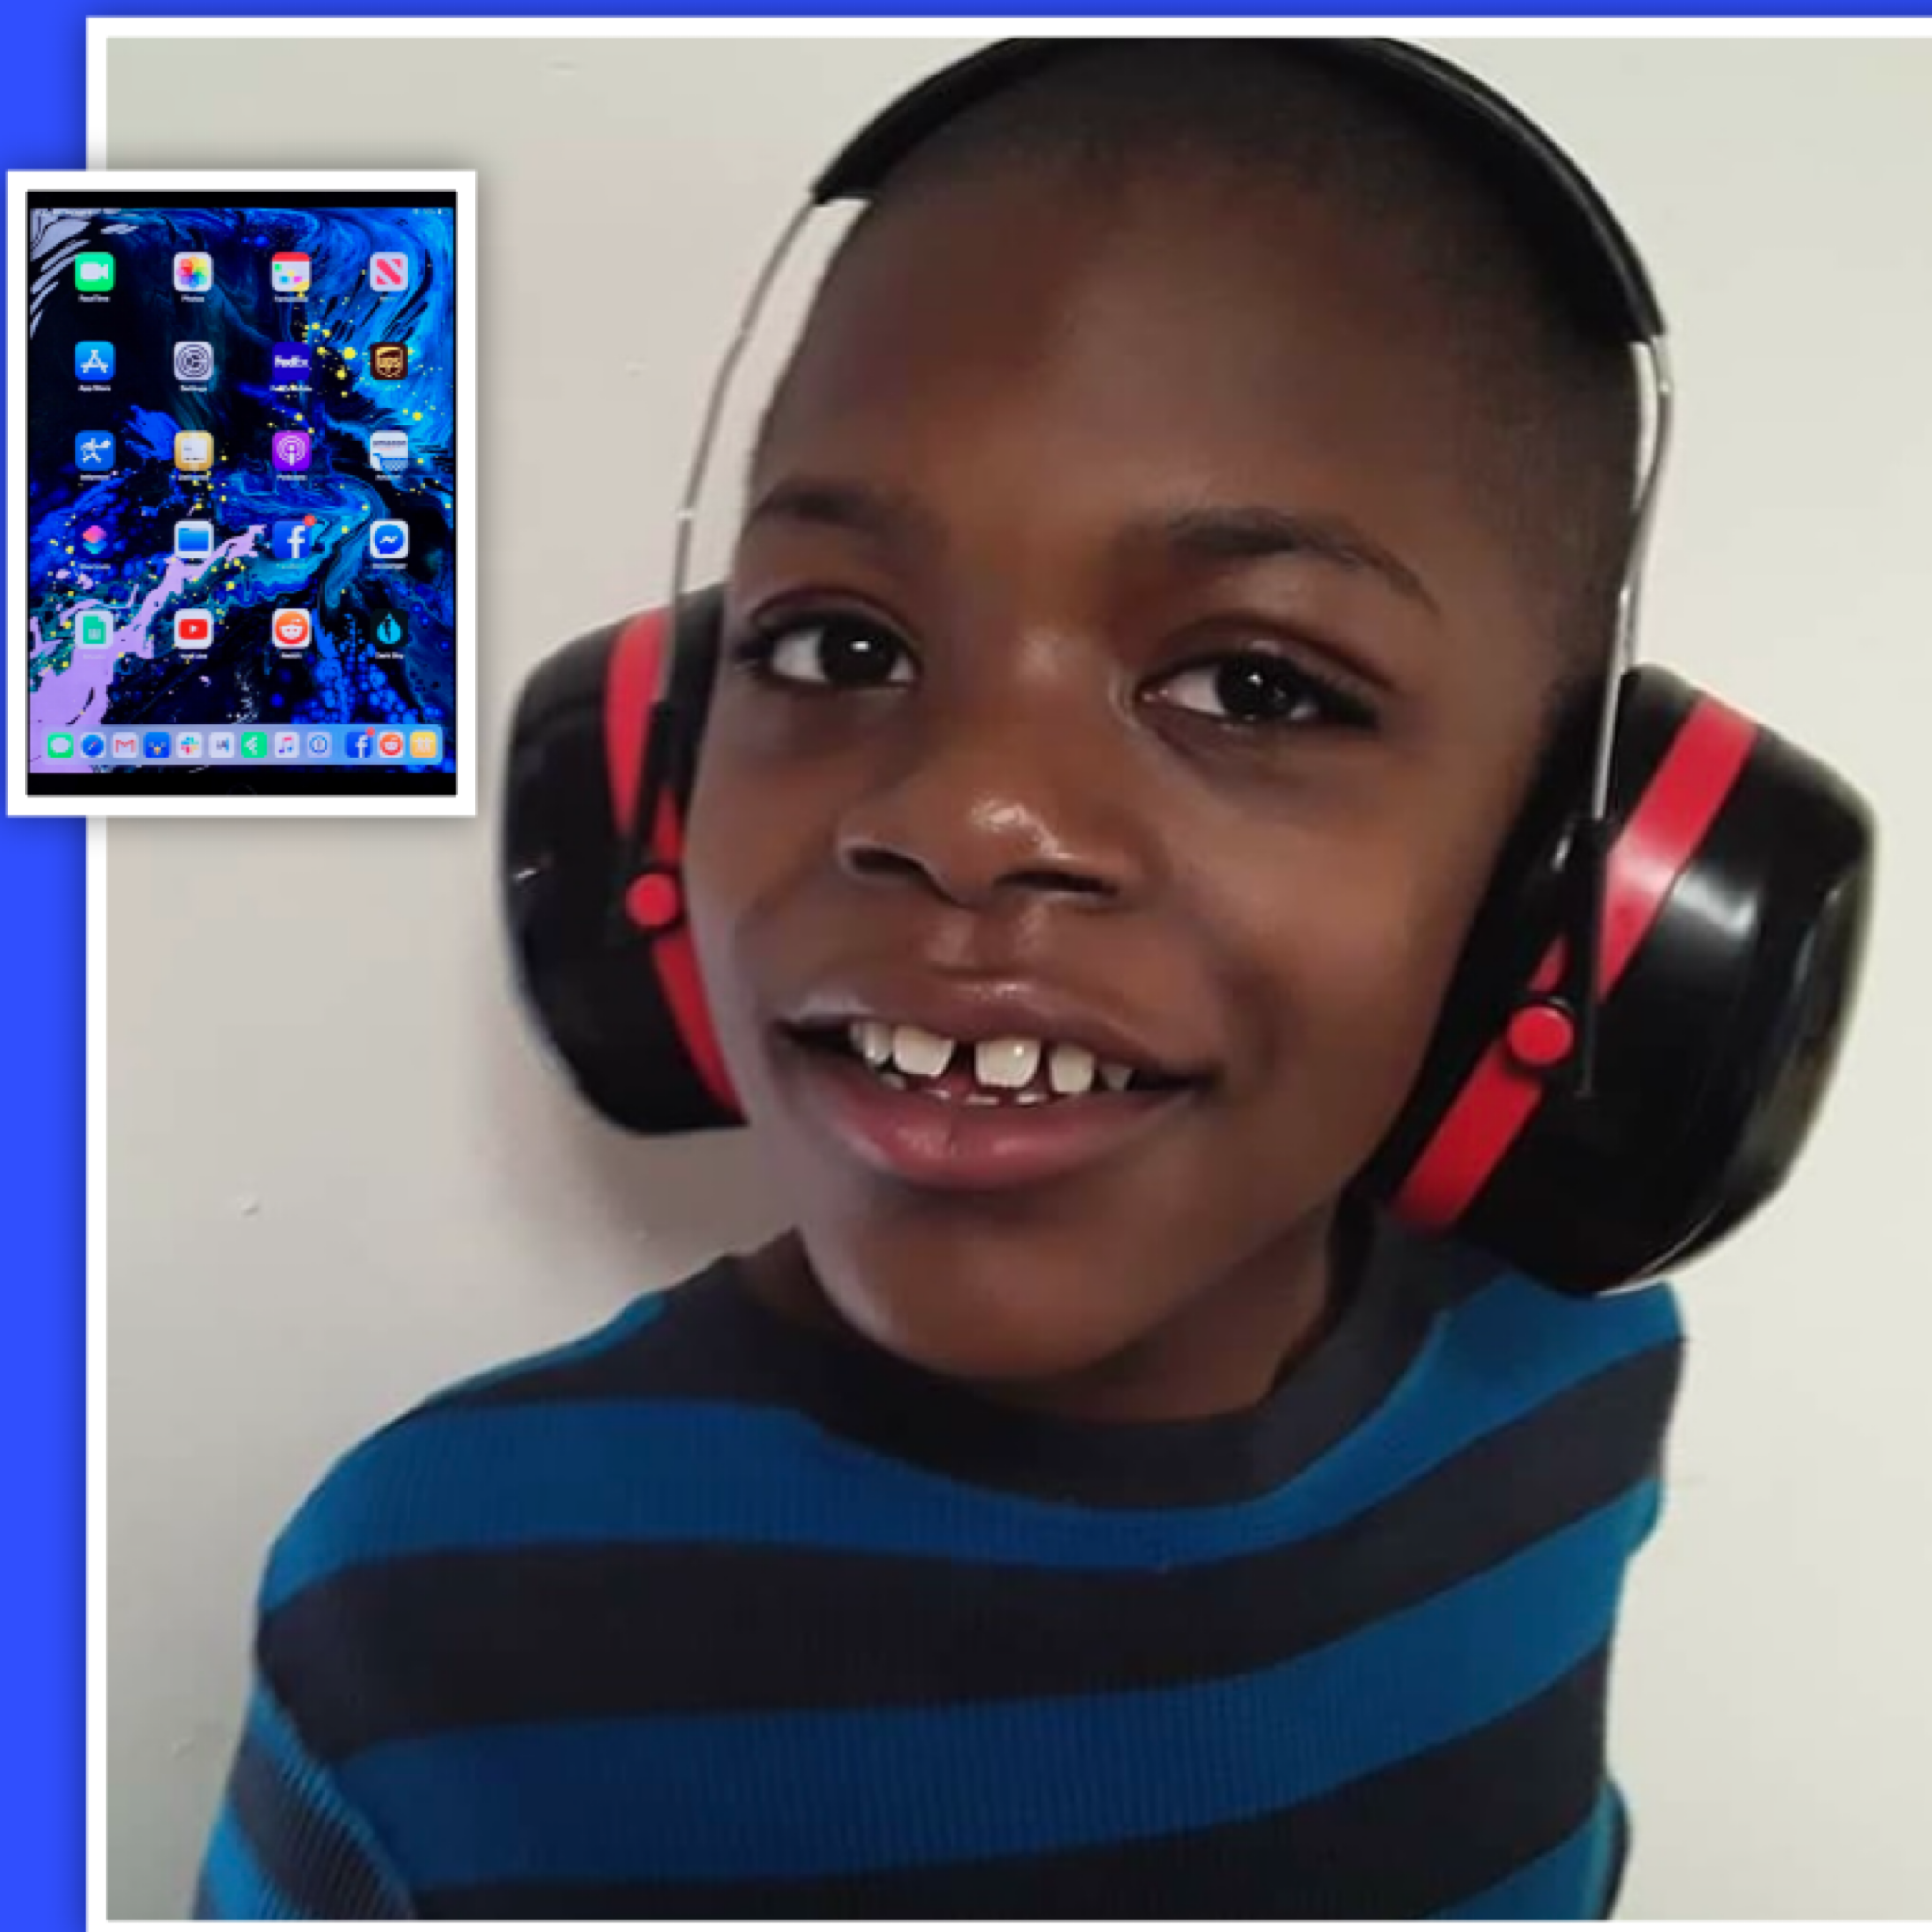 ⭐️Nonverbal child with Autism gets the gift of communication. Wish granted for Michael! ⭐️